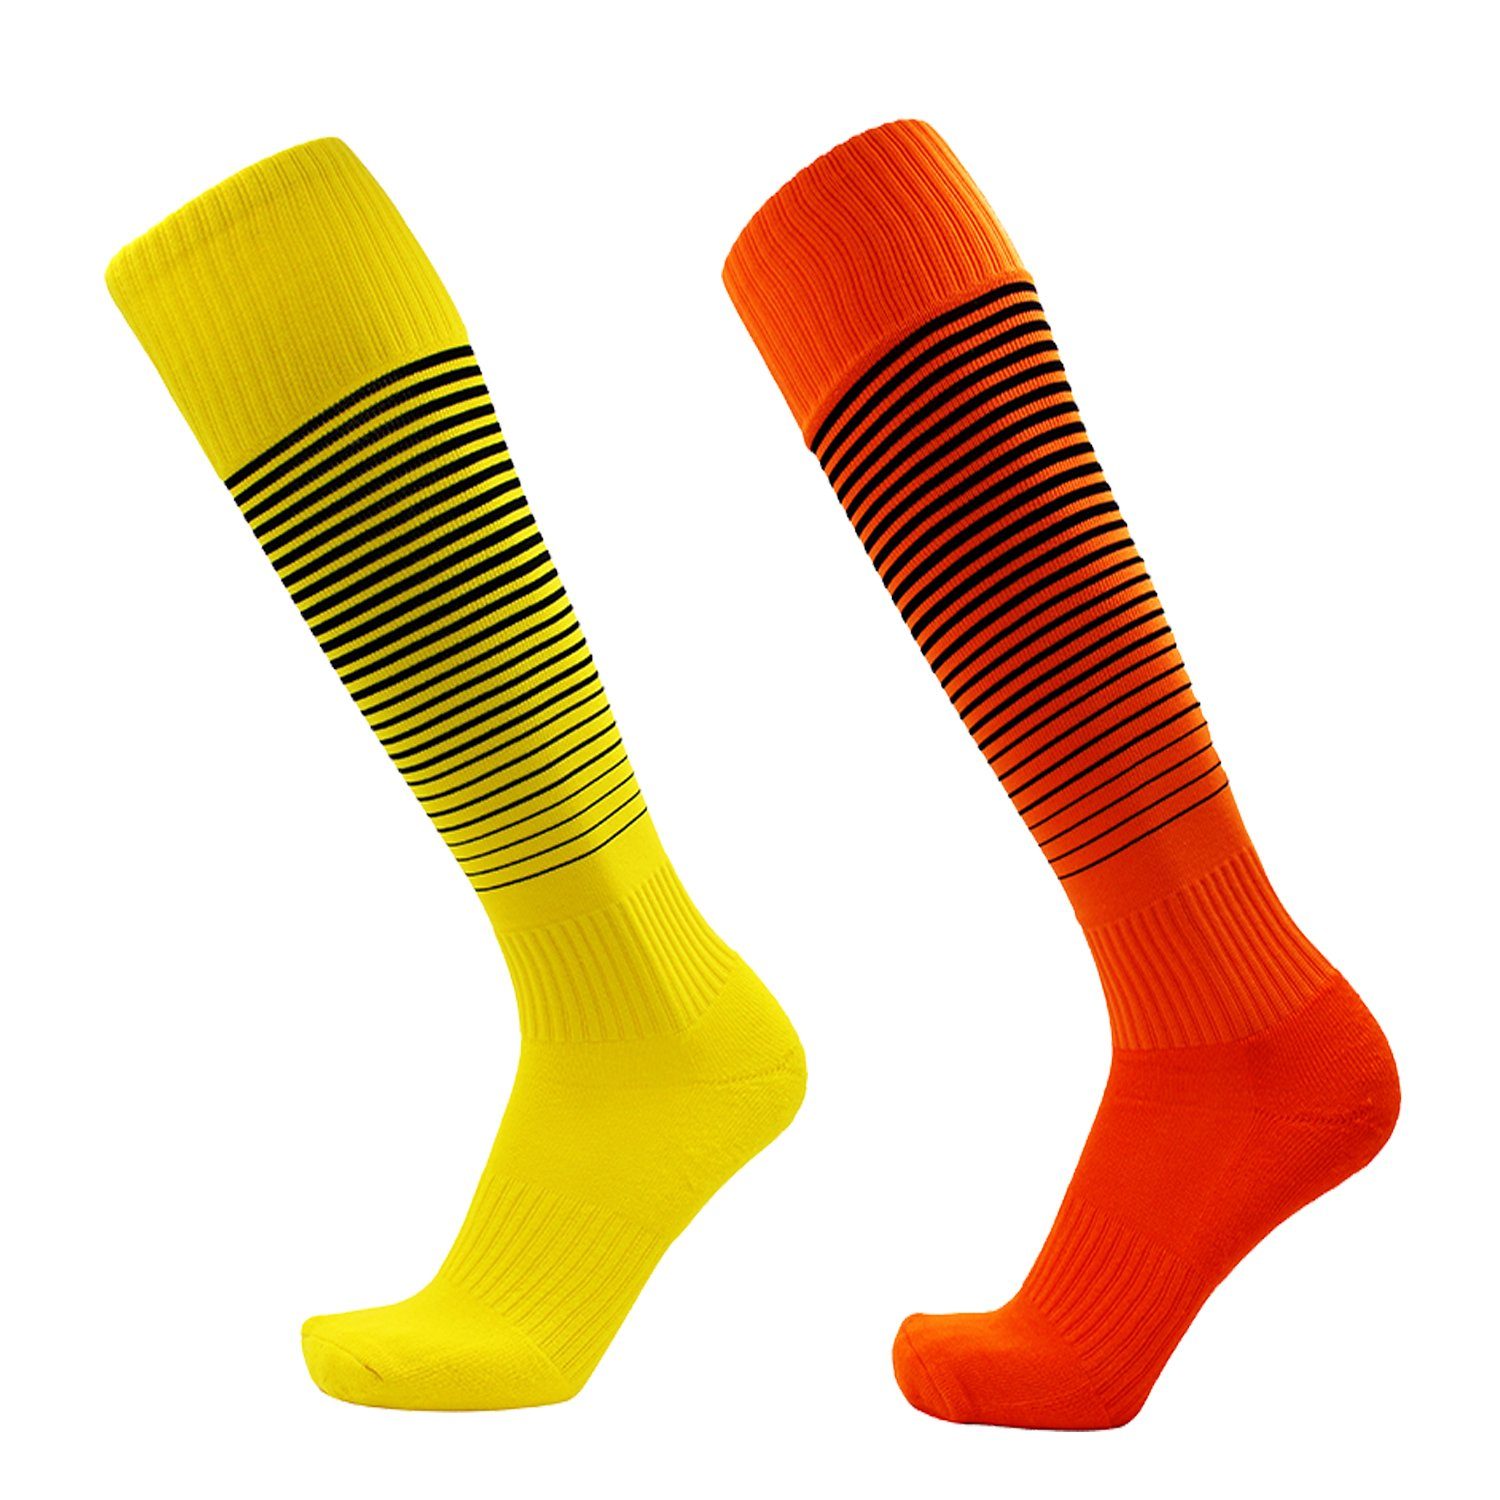 独特な WAWEN SOCKSHOSIERY Orange+yellow メンズ 7-12US/MEN B07595X1RV 7-12US/MEN|Orange+yellow Orange+yellow 7-12US メンズ/MEN, 弁当箱と木製キッチン雑貨tawatawa:19e0a8c3 --- senas.4x4.lt